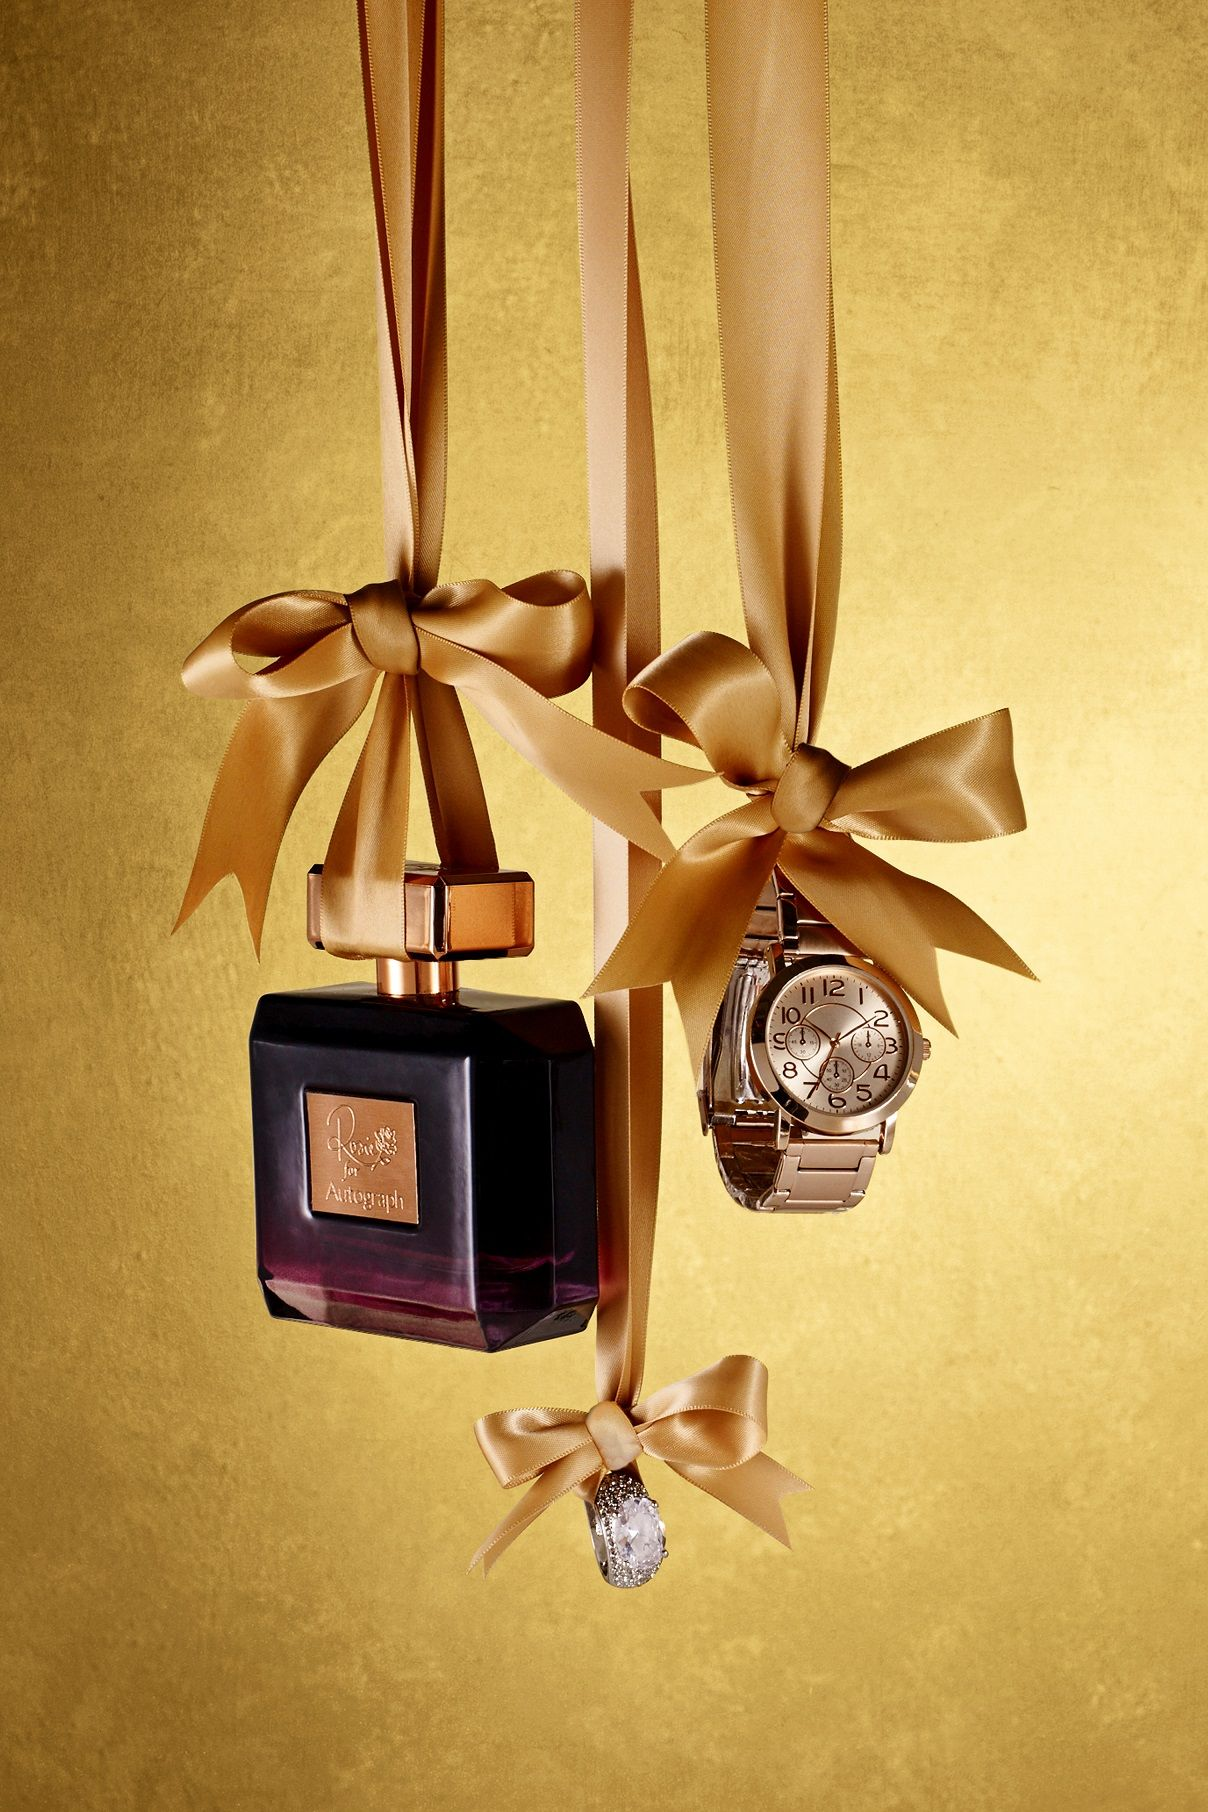 From Rosie S New Seductive Fragrance To Elegantly Stylish Watches